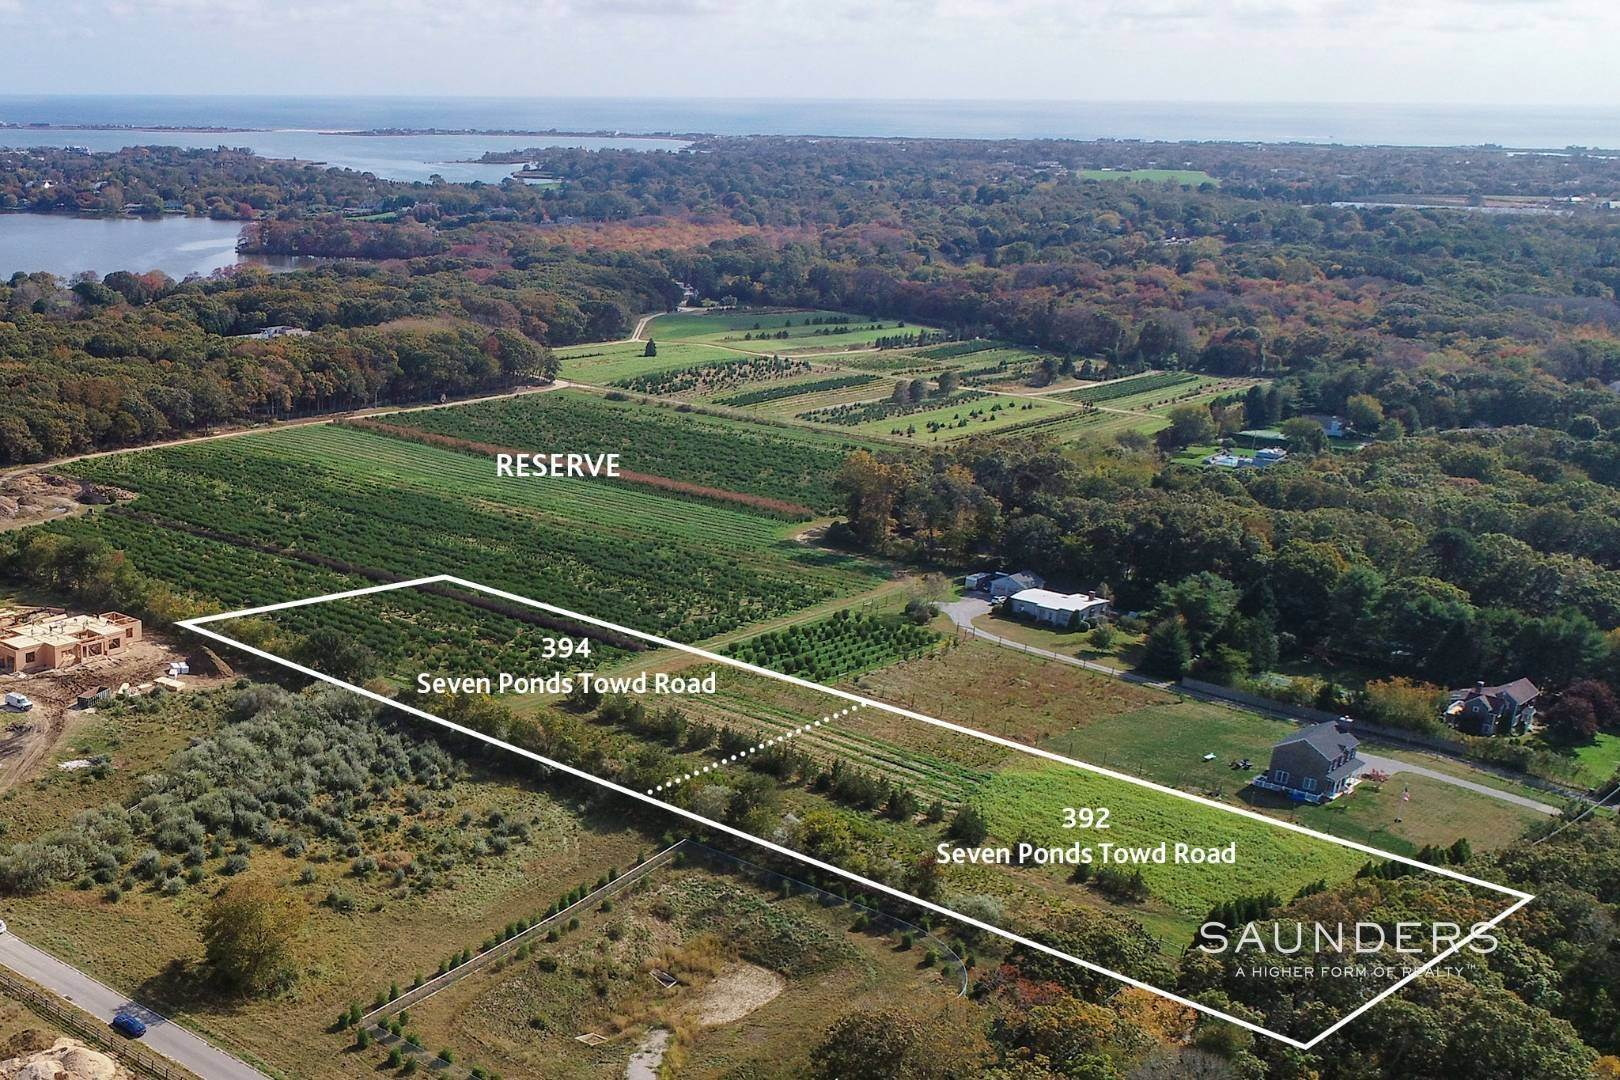 Land for Sale at Estate-Quality Parcels Overlooking 48 Acre Reserve 394 Seven Ponds Towd Road, Water Mill, Southampton Town, NY 11976